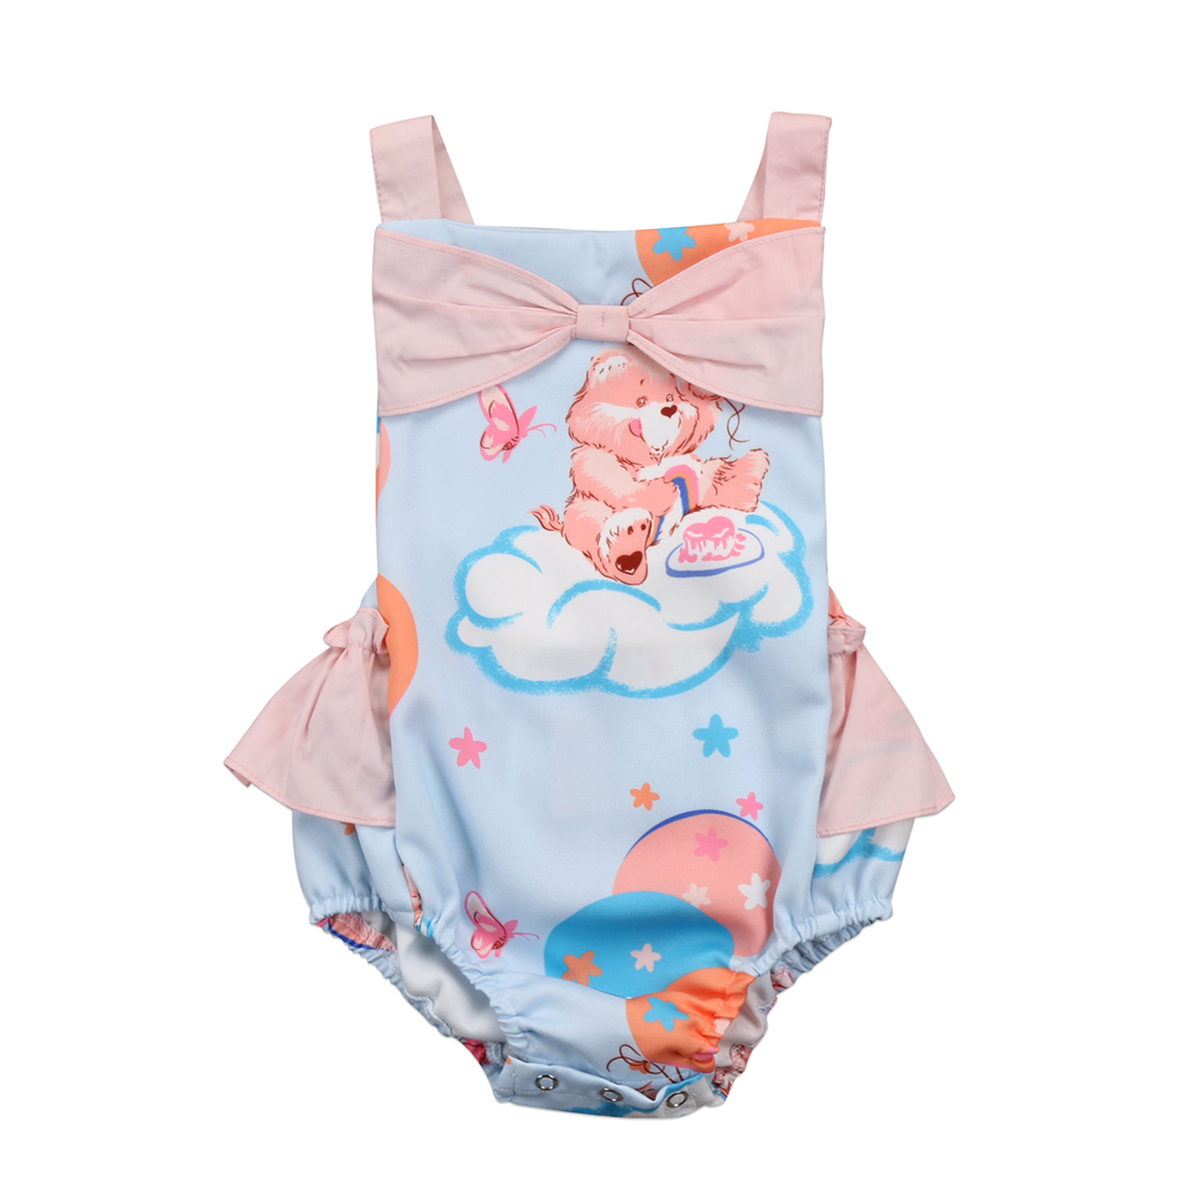 Infant Kids Baby Boy Girl Butterfly-knot Bear Print Drawstring Covered Button Tops Clothes Jumpsuit Bodysuit Outfits Bodysuits & One-pieces Mother & Kids